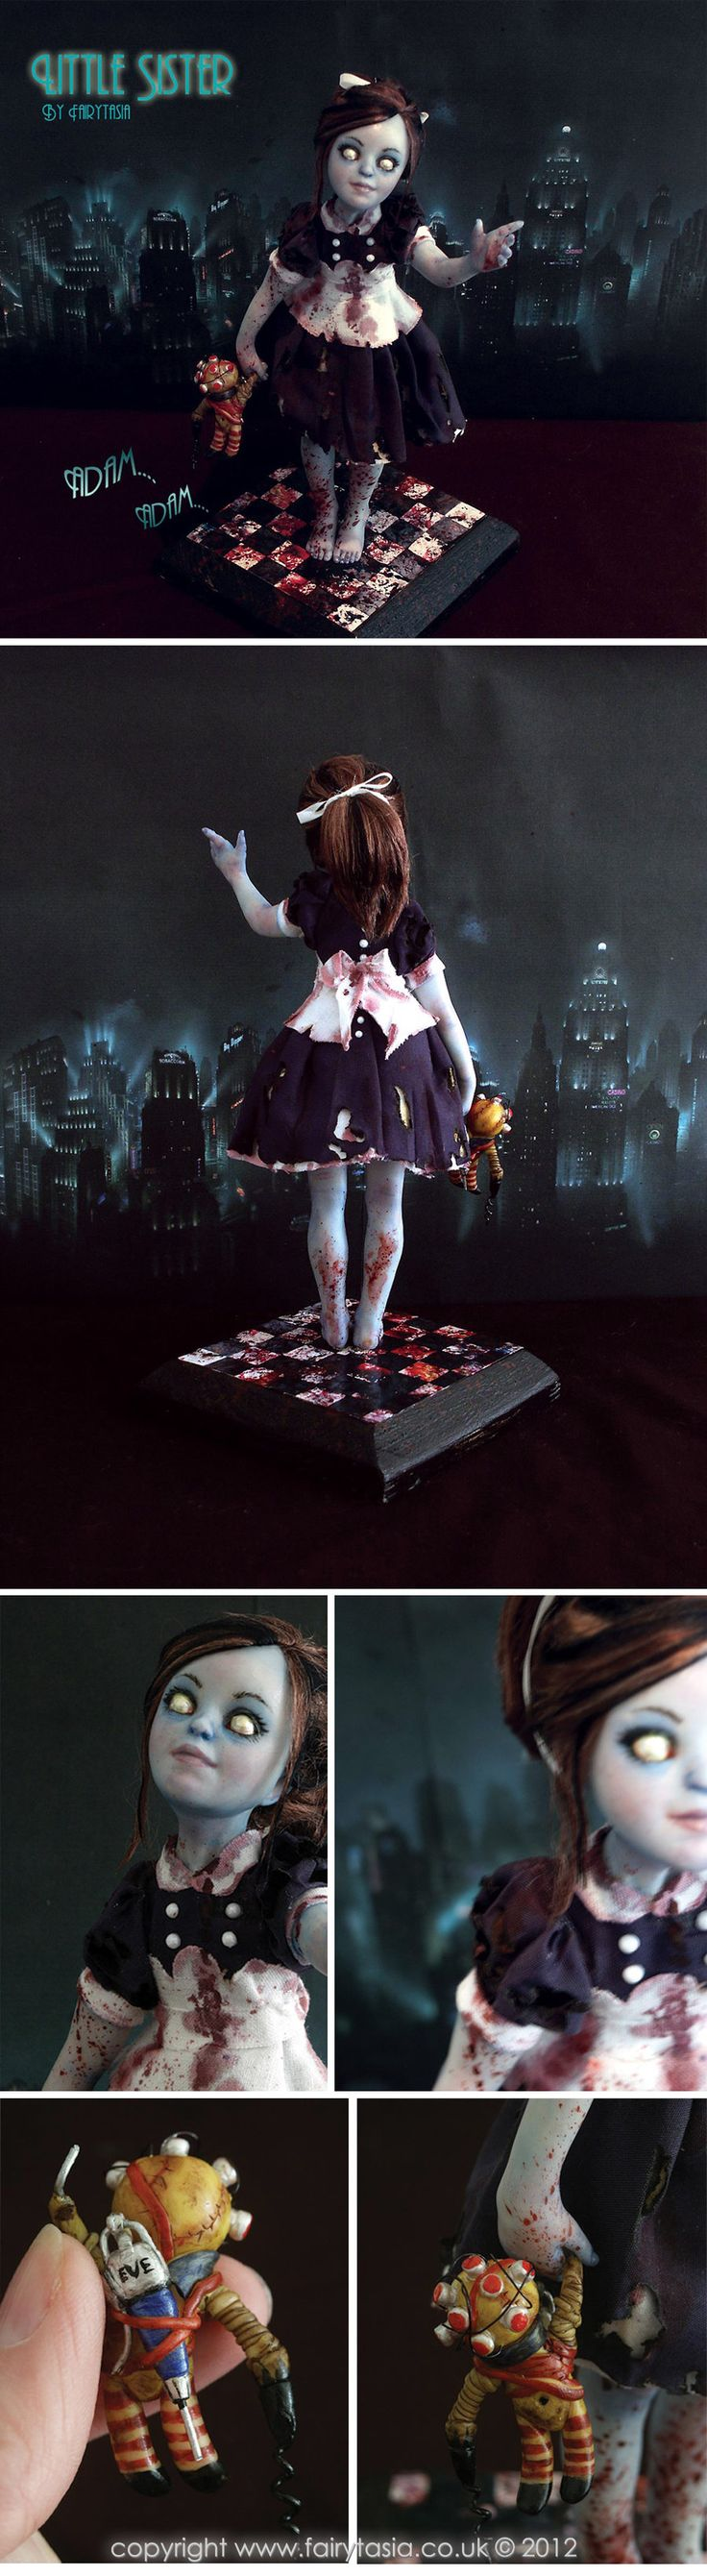 Fairytasia OOAK Little Sister Bioshock up on eBay by fairytasia.deviantart.com